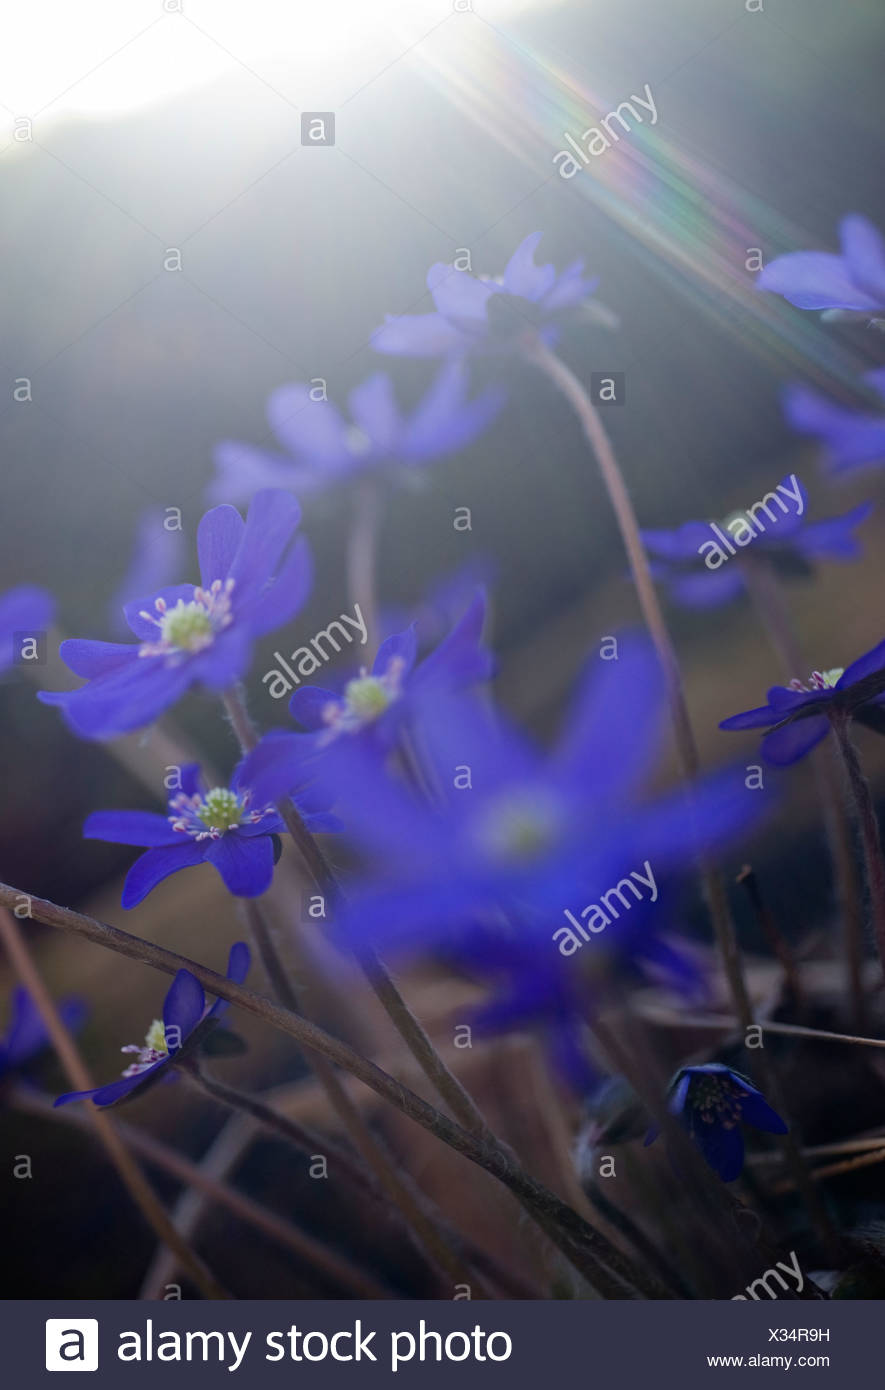 Scandinavia, Sweden, Vastkusten, Bjorko, Liverwort flowers, close-up - Stock Image